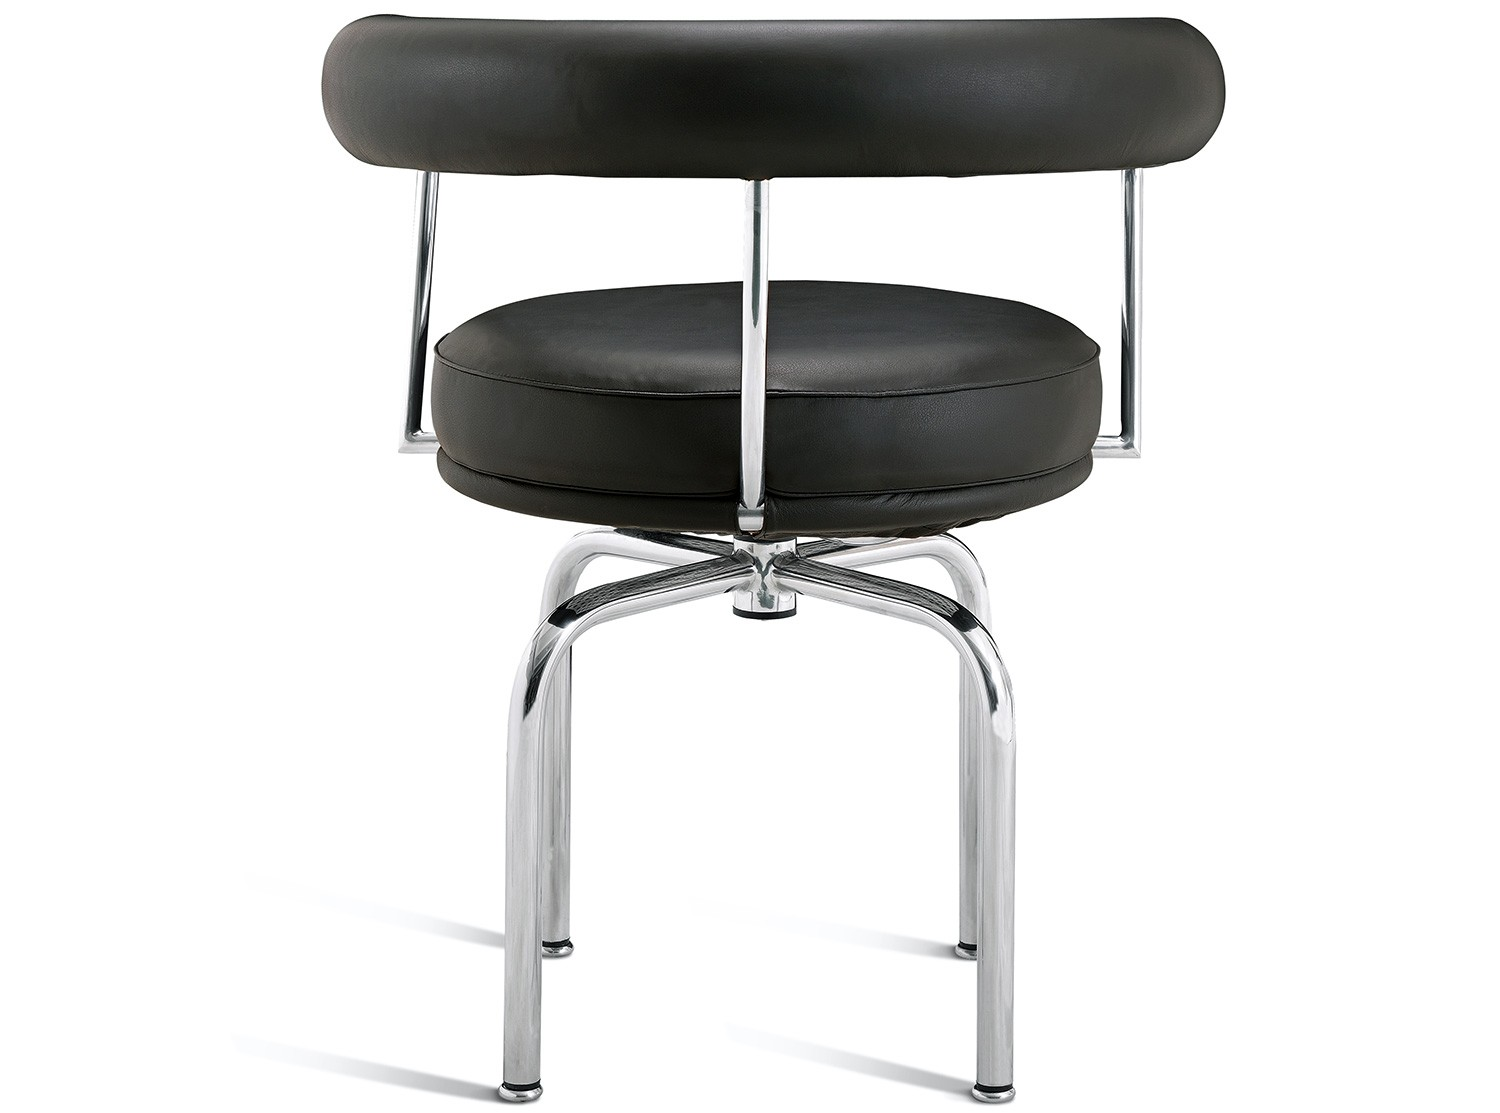 Replica lc7 swivel chair le corbusier for Le corbusier replica